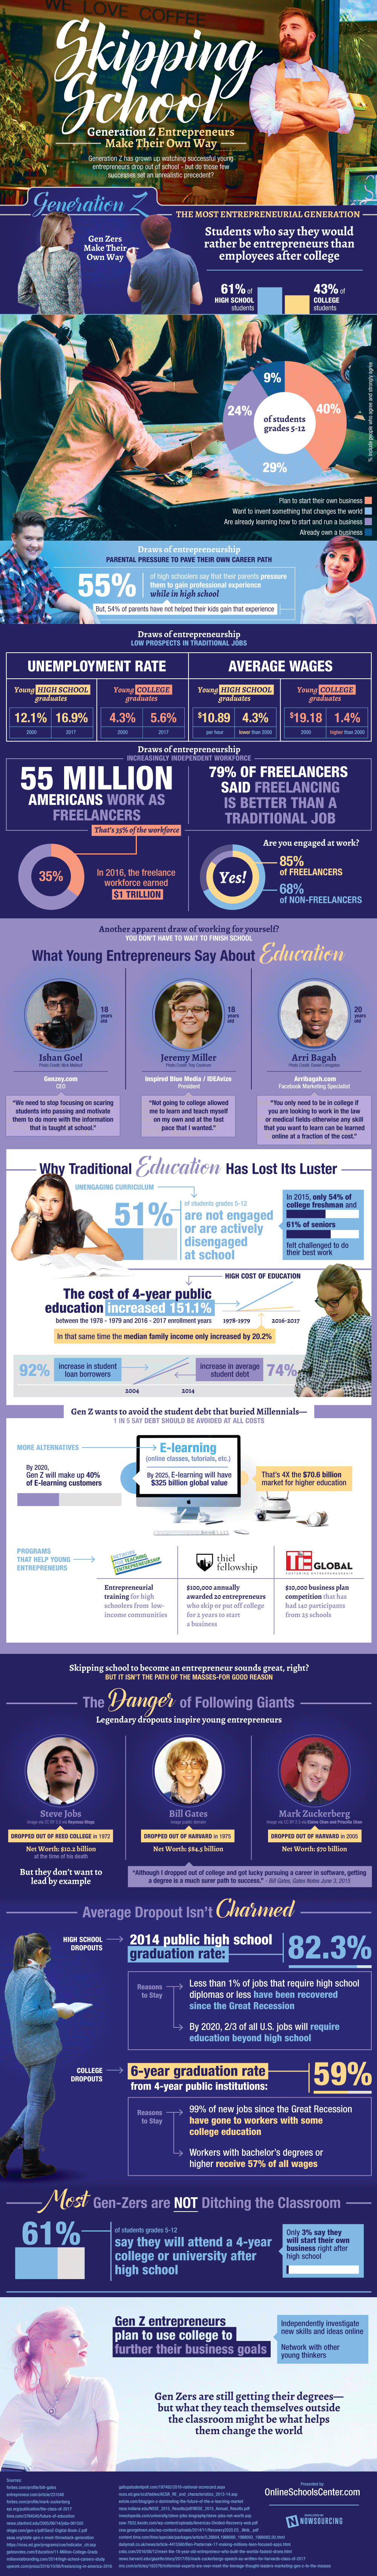 Will All Gen Z Entrepreneurs Be Drop Outs? - Infographic